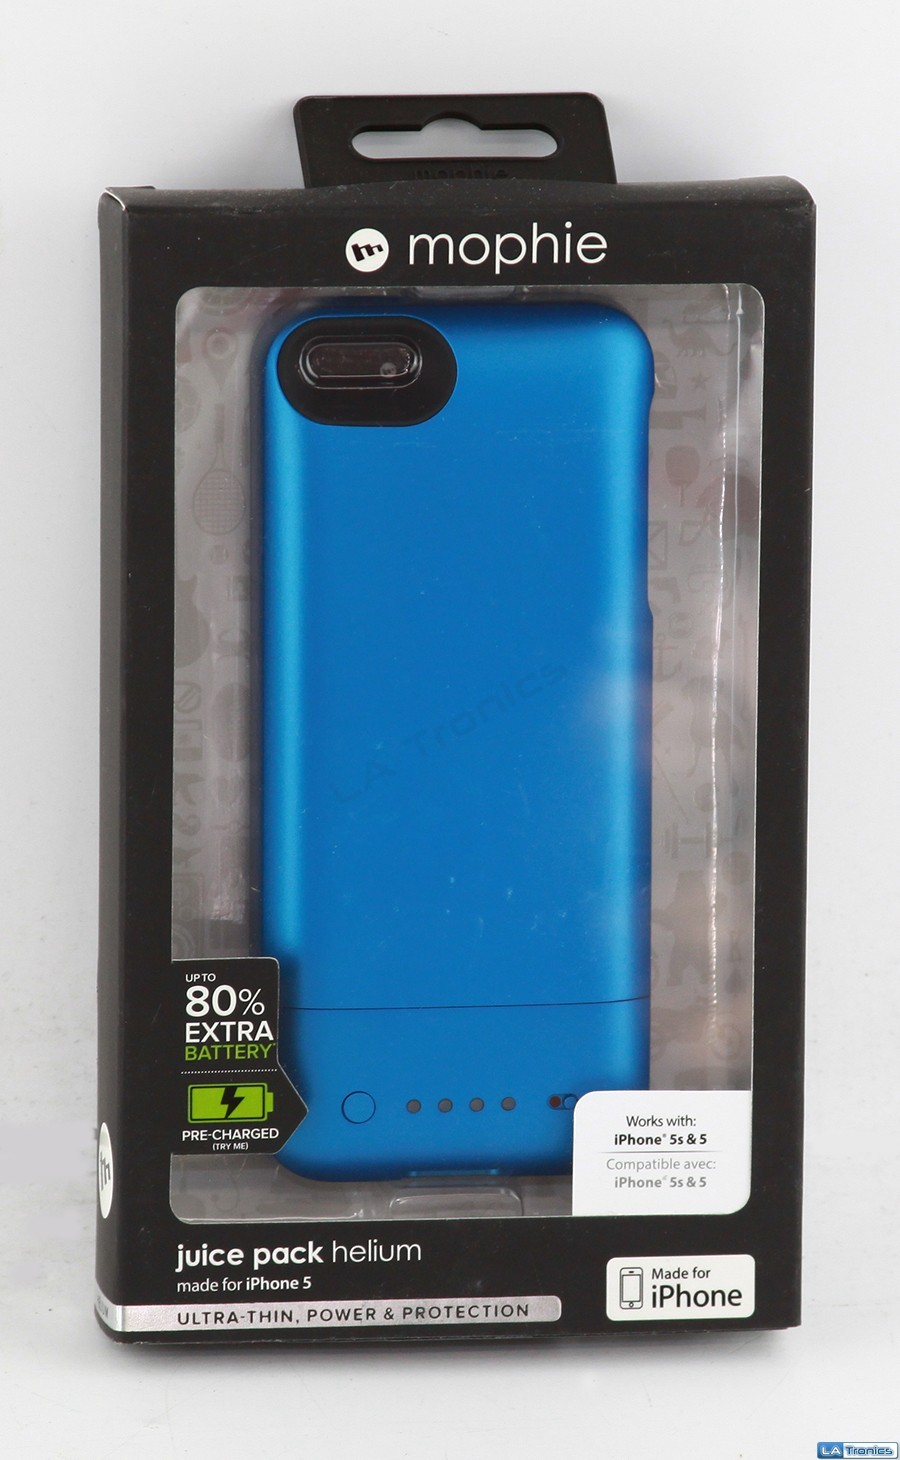 New Mophie Juice Pack Helium 2467 for Iphone 5 Recharging Portable Case - BLUE